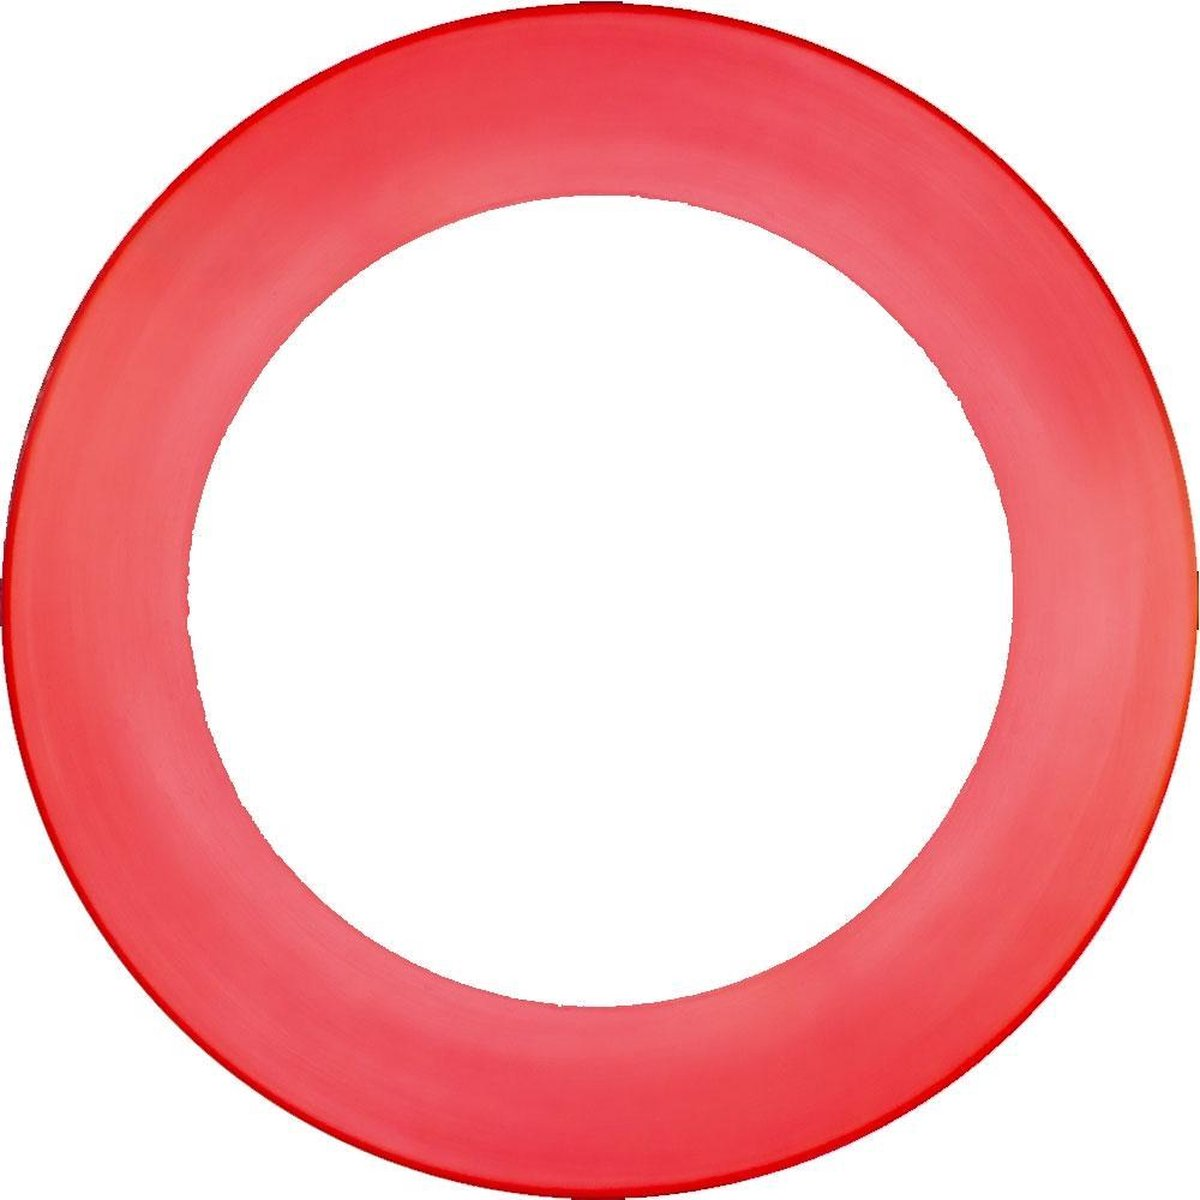 Bull's Dartbord Surround Ring - Rood